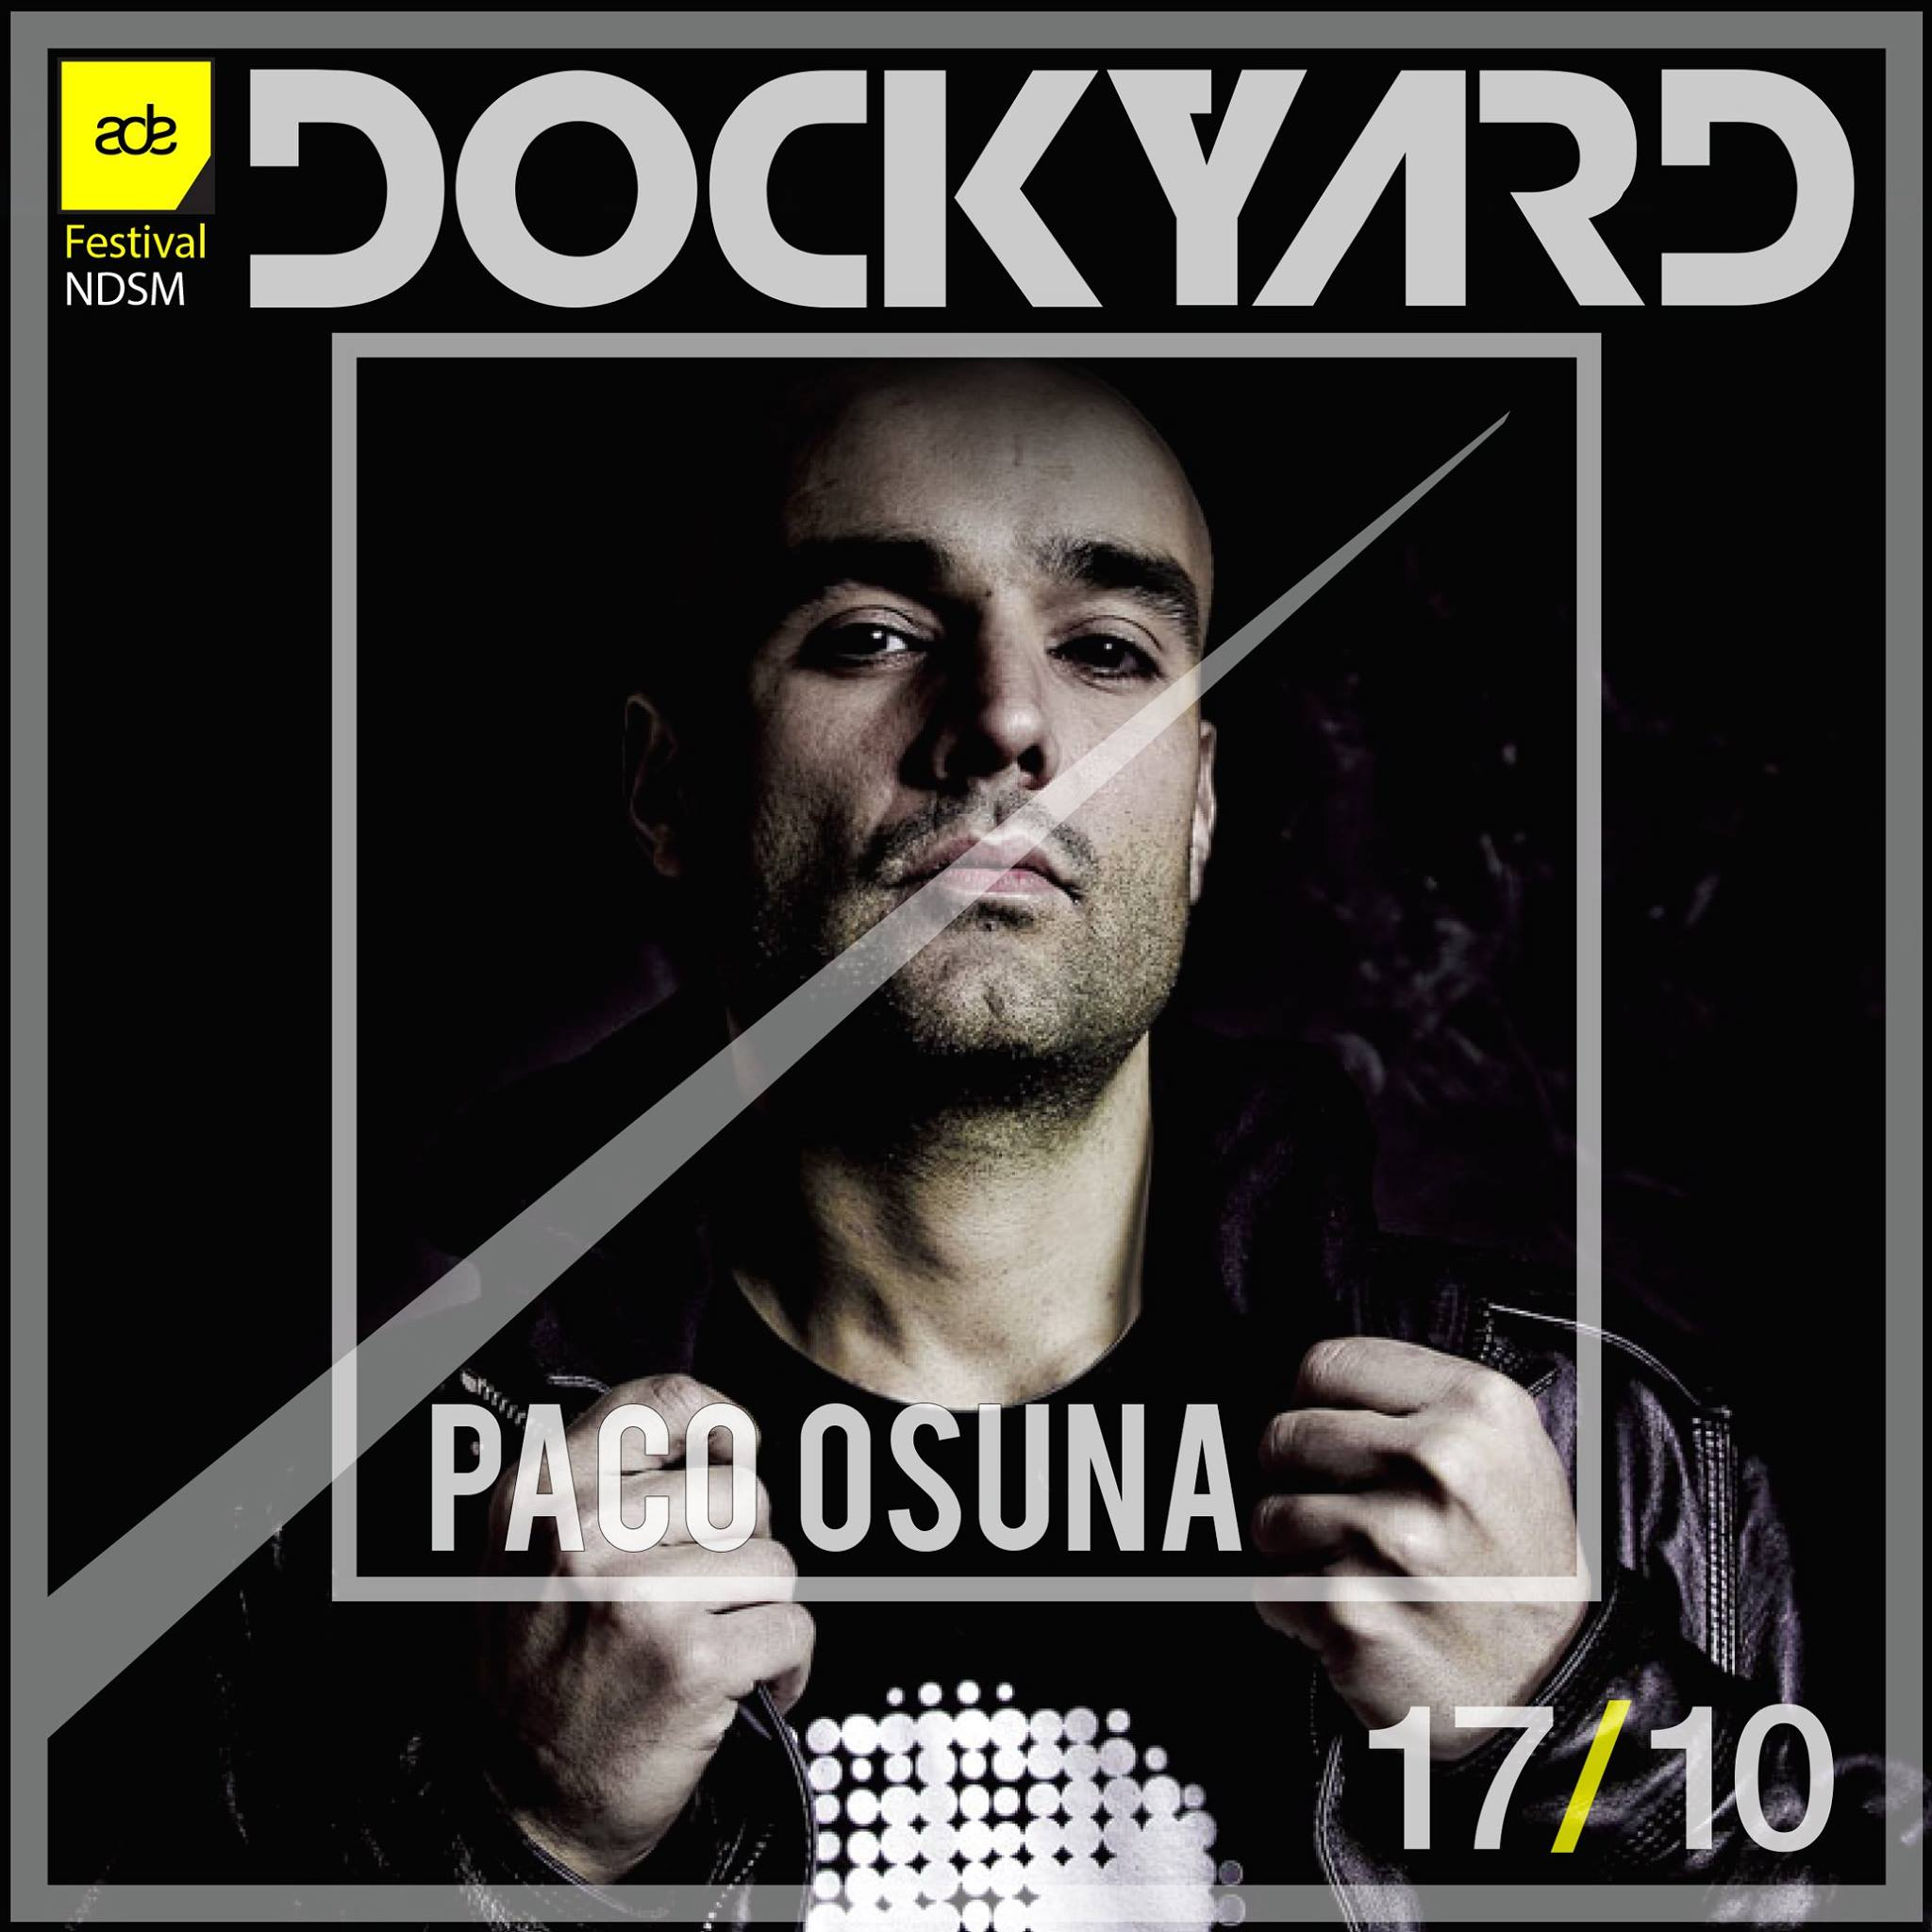 download → Paco Osuna - live at Dockyard Festival, FACT Stage, NDSM Docklands, ADE 2015 - 17-Oct-2015